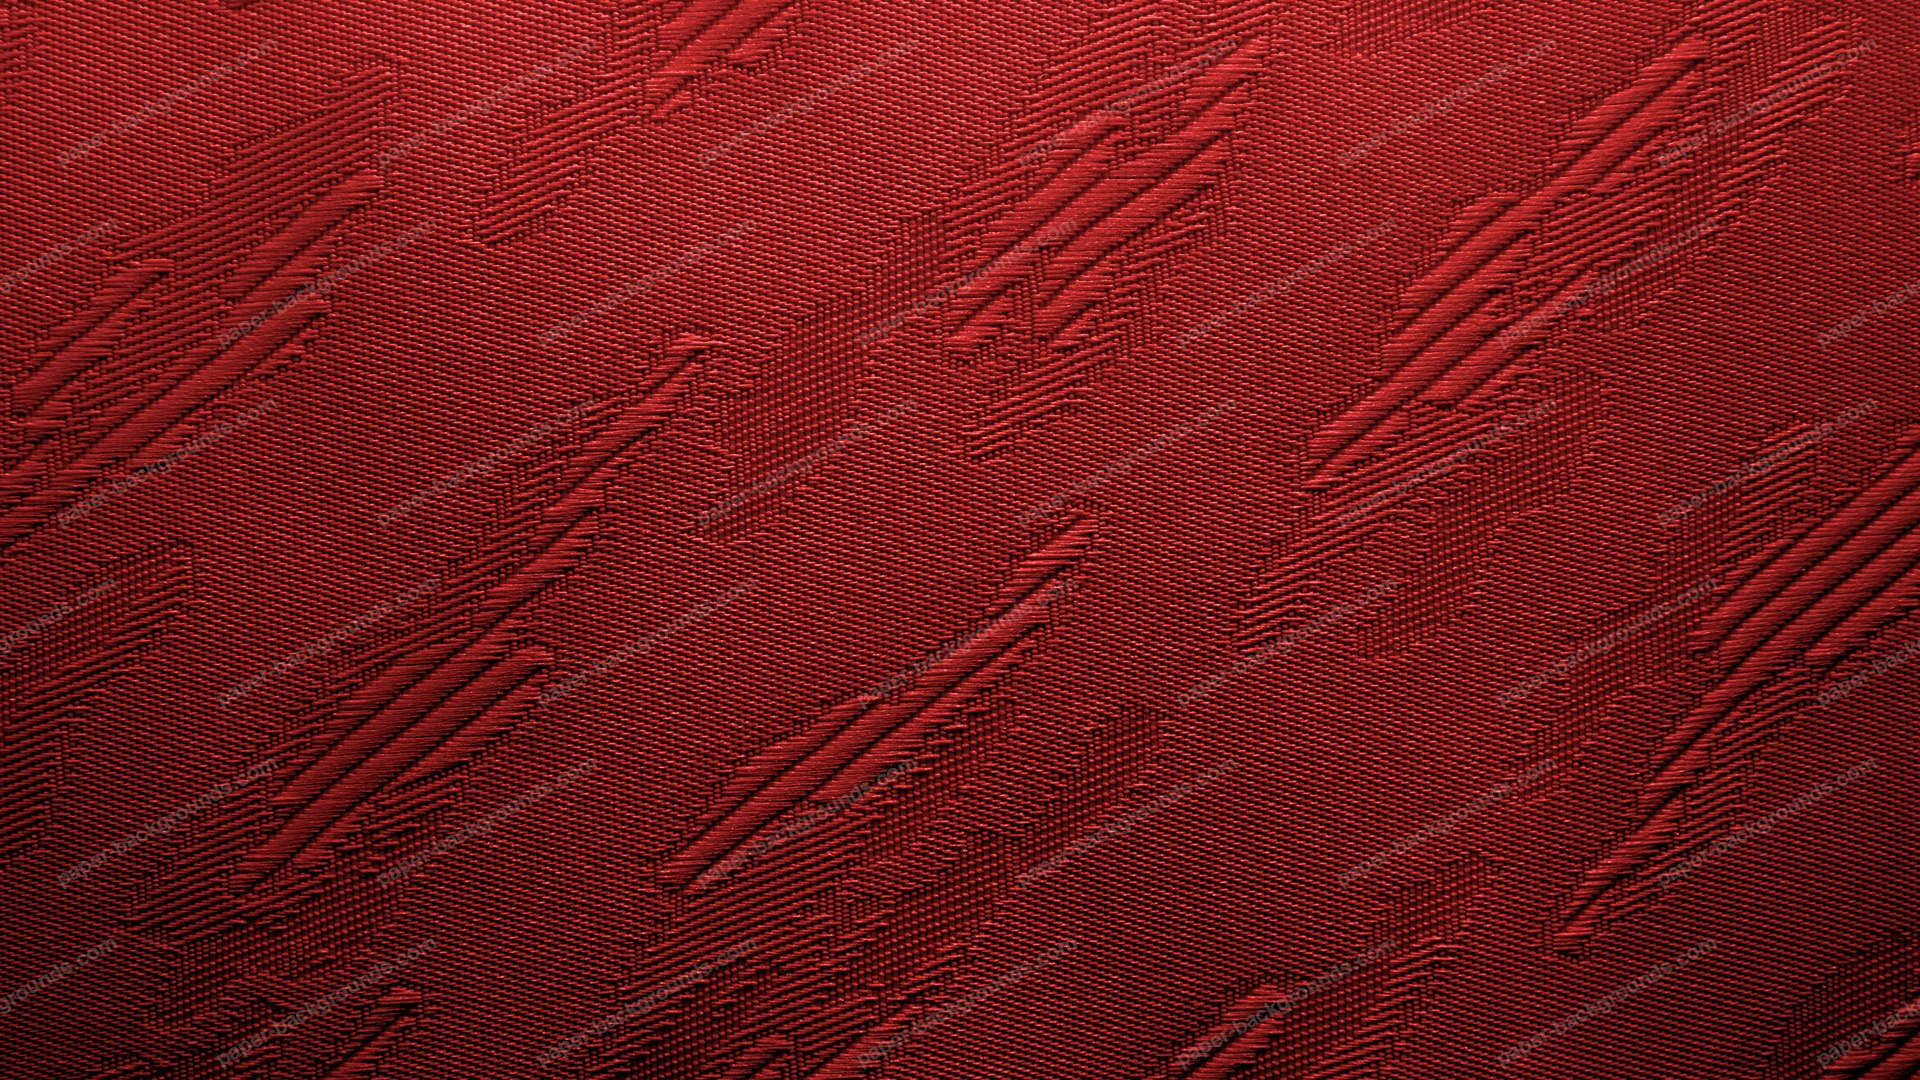 Vintage Red Canvas Texture HD 1920 x 1080p